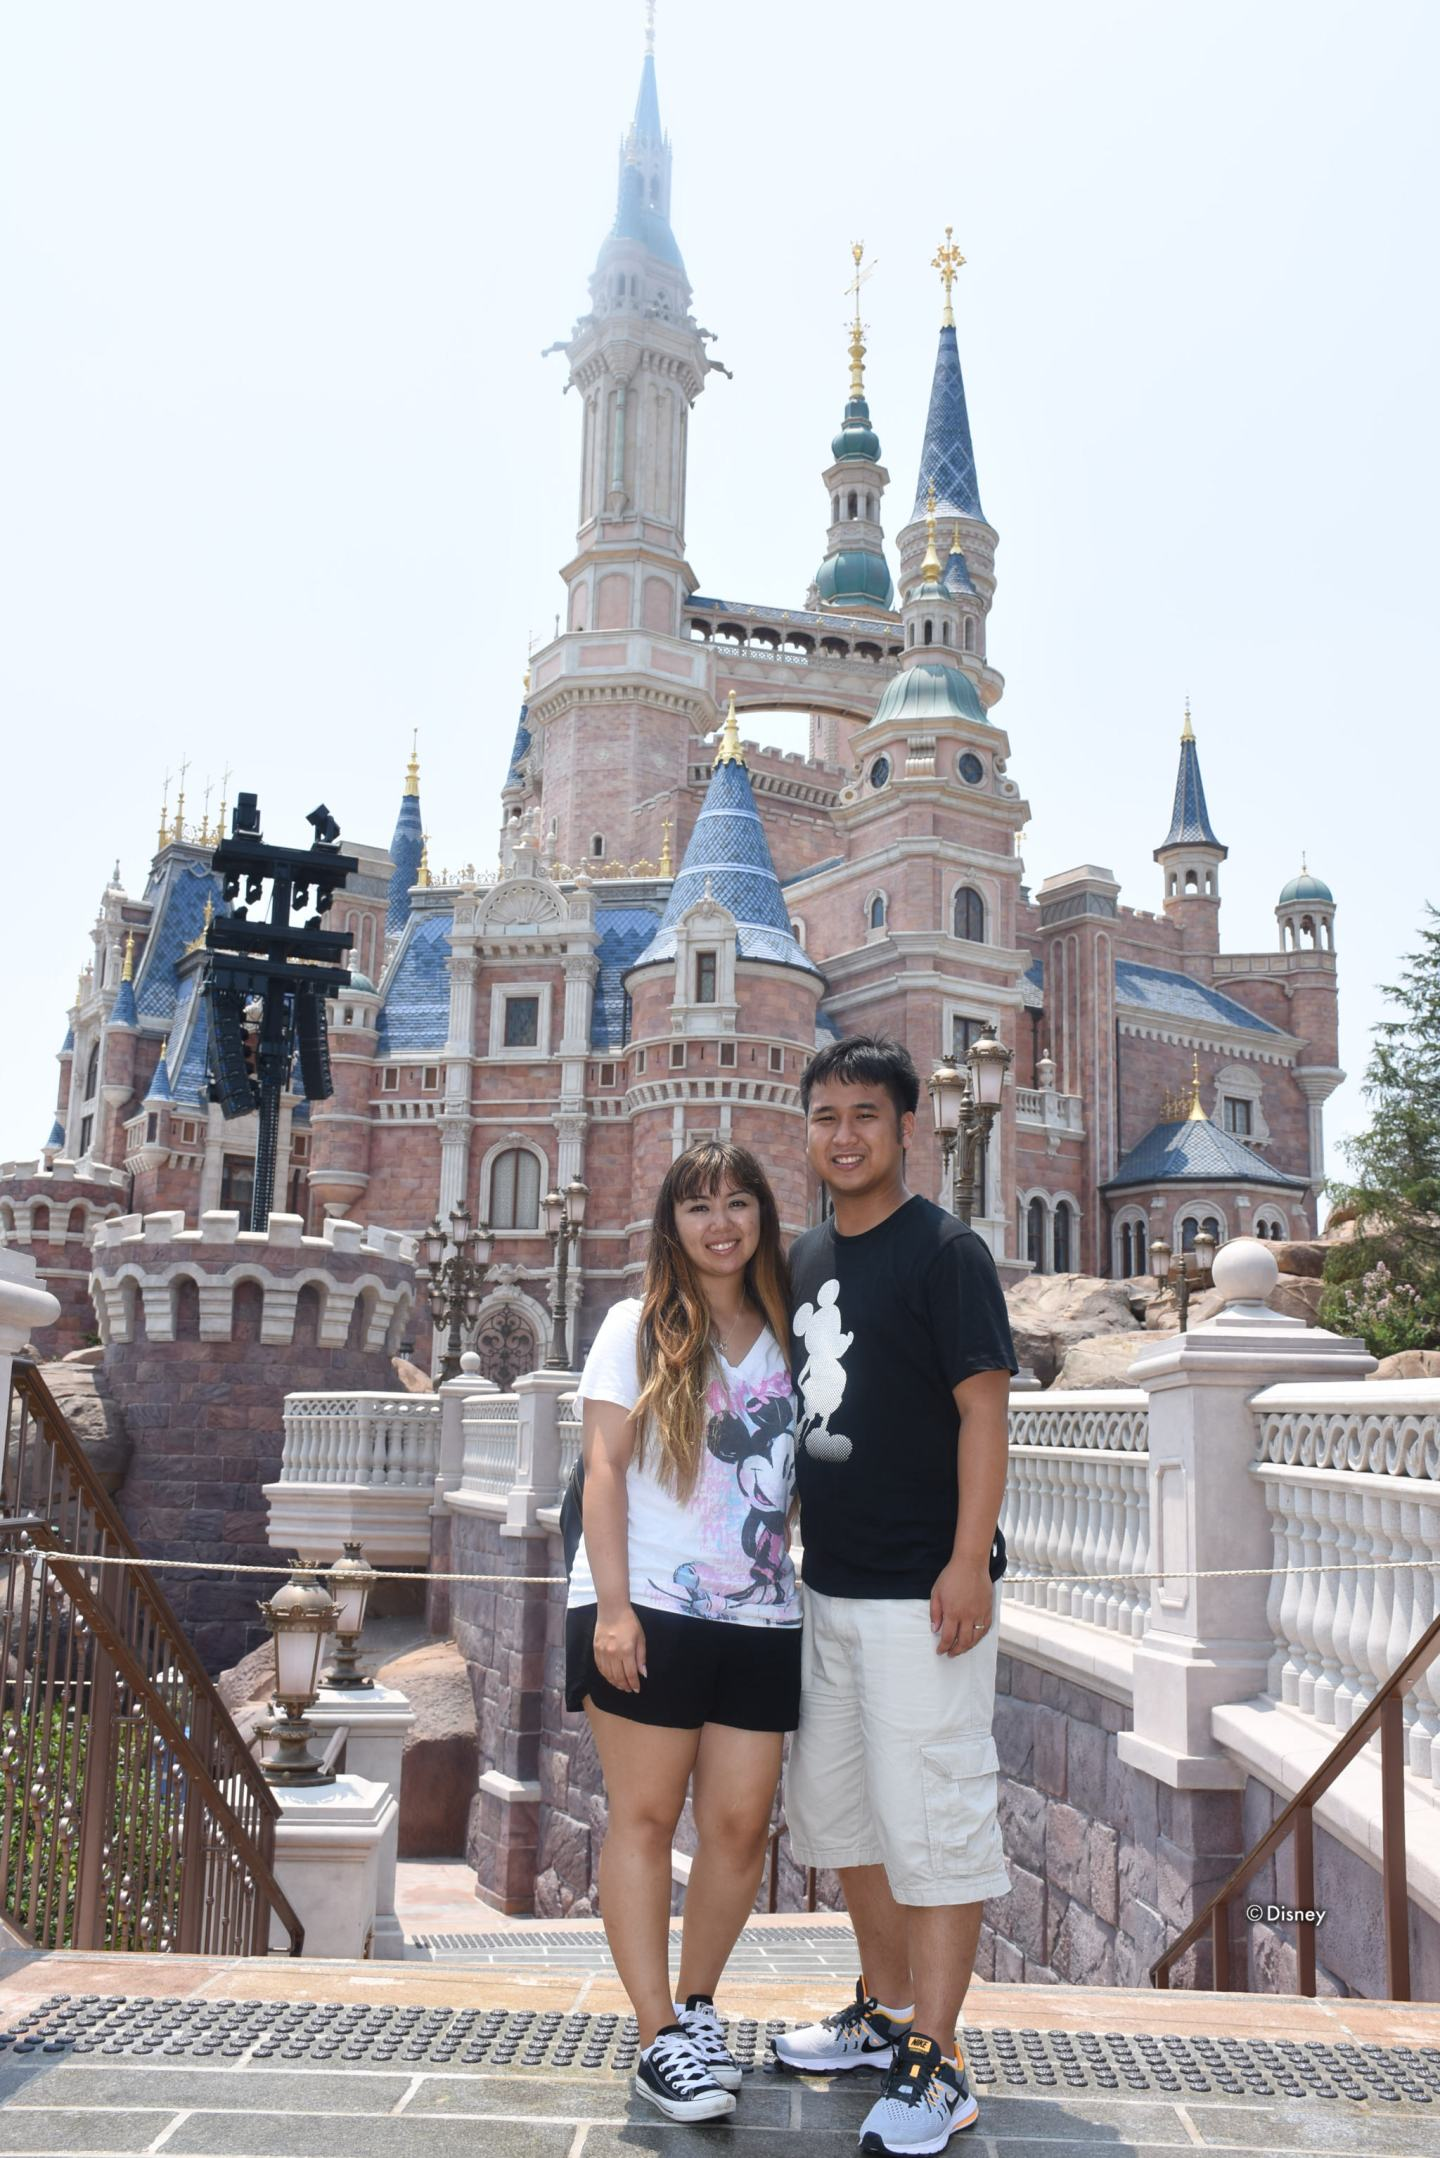 Visiting every Disneyland in the World: 12 Parks in 6 Cities